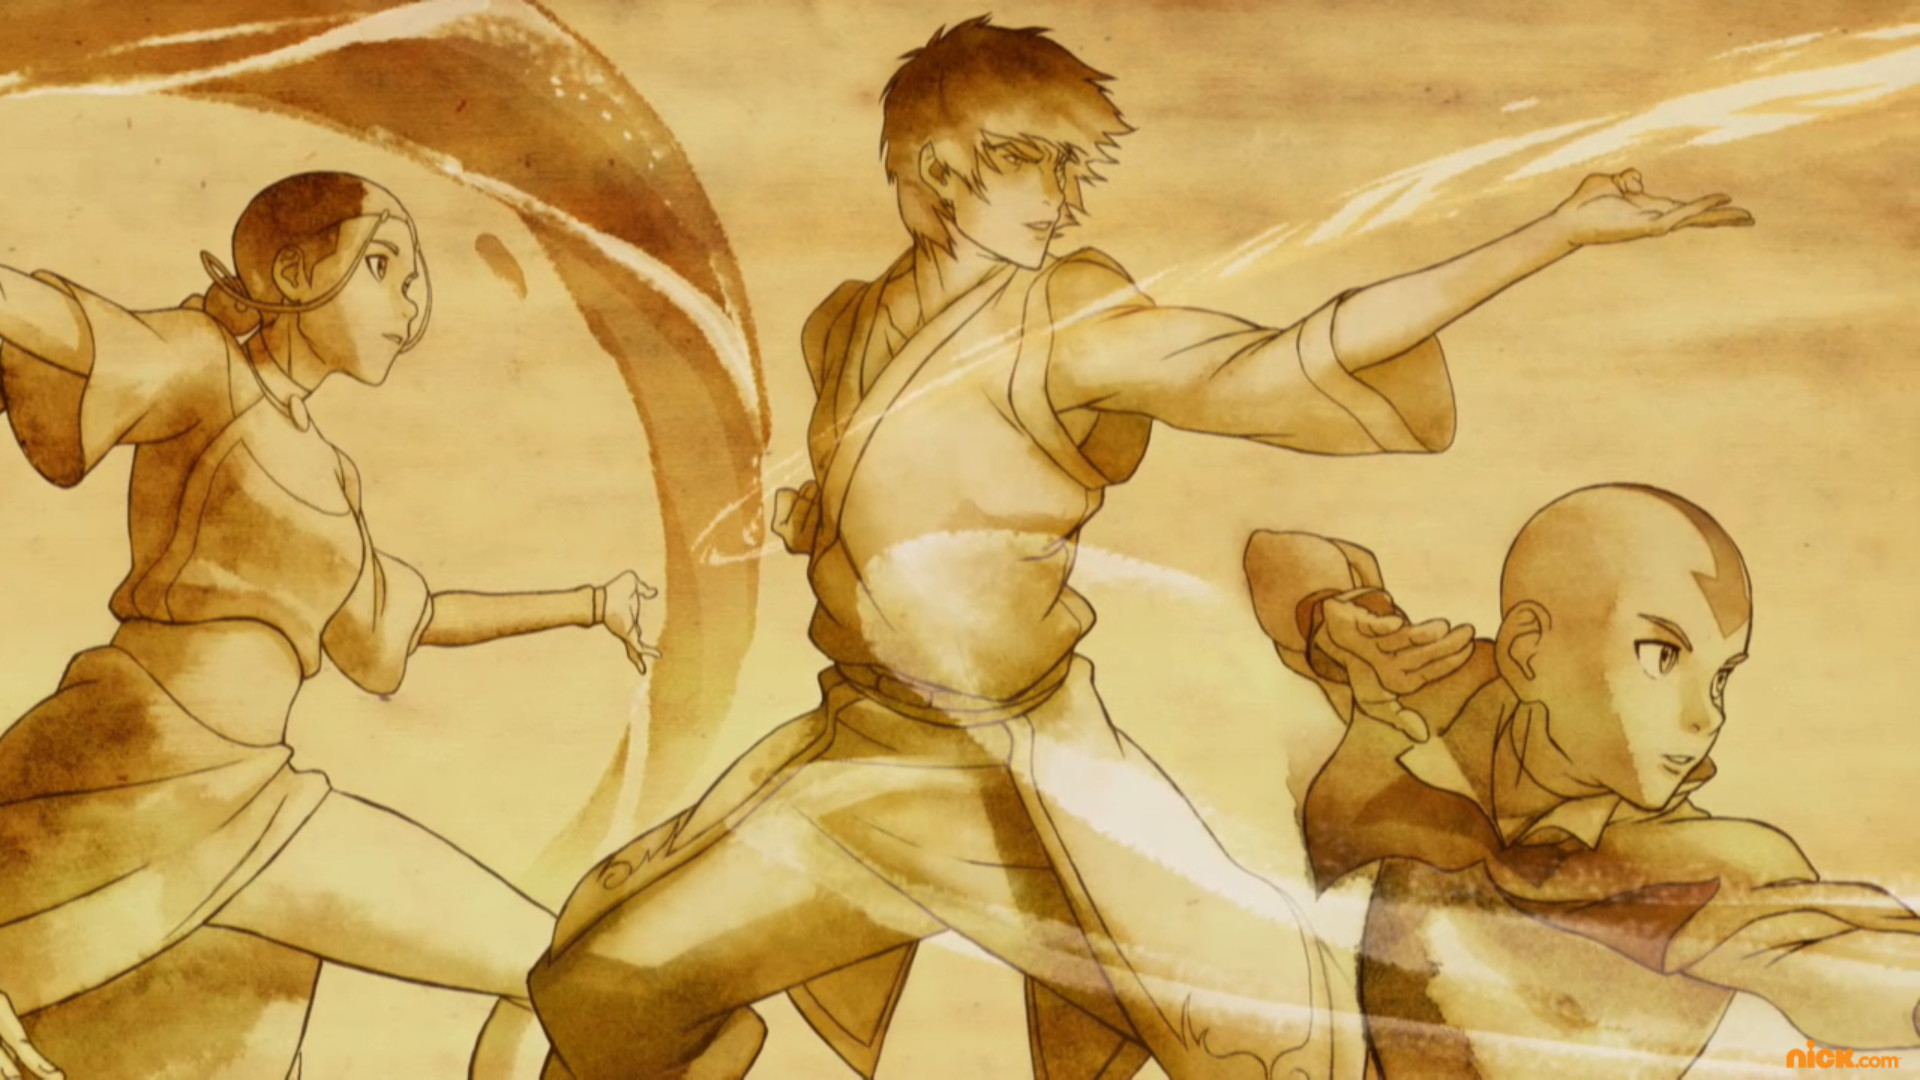 92 Avatar: The Legend Of Korra HD Wallpapers   Backgrounds – Wallpaper  Abyss – Page 2